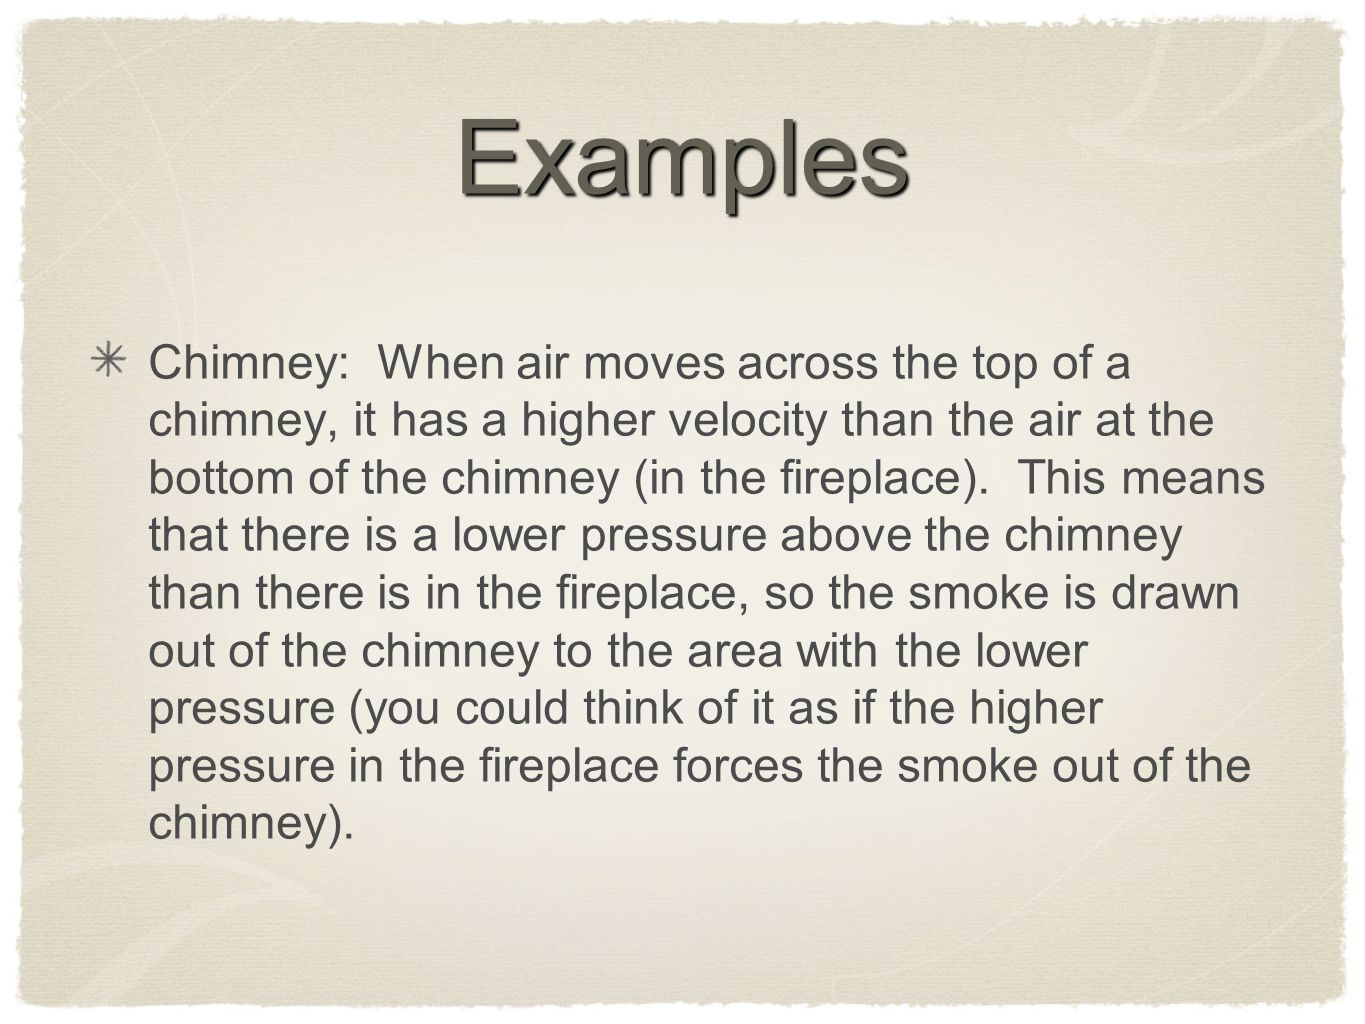 Examples Chimney: When air moves across the top of a chimney, it has a higher velocity than the air at the bottom of the chimney (in the fireplace).